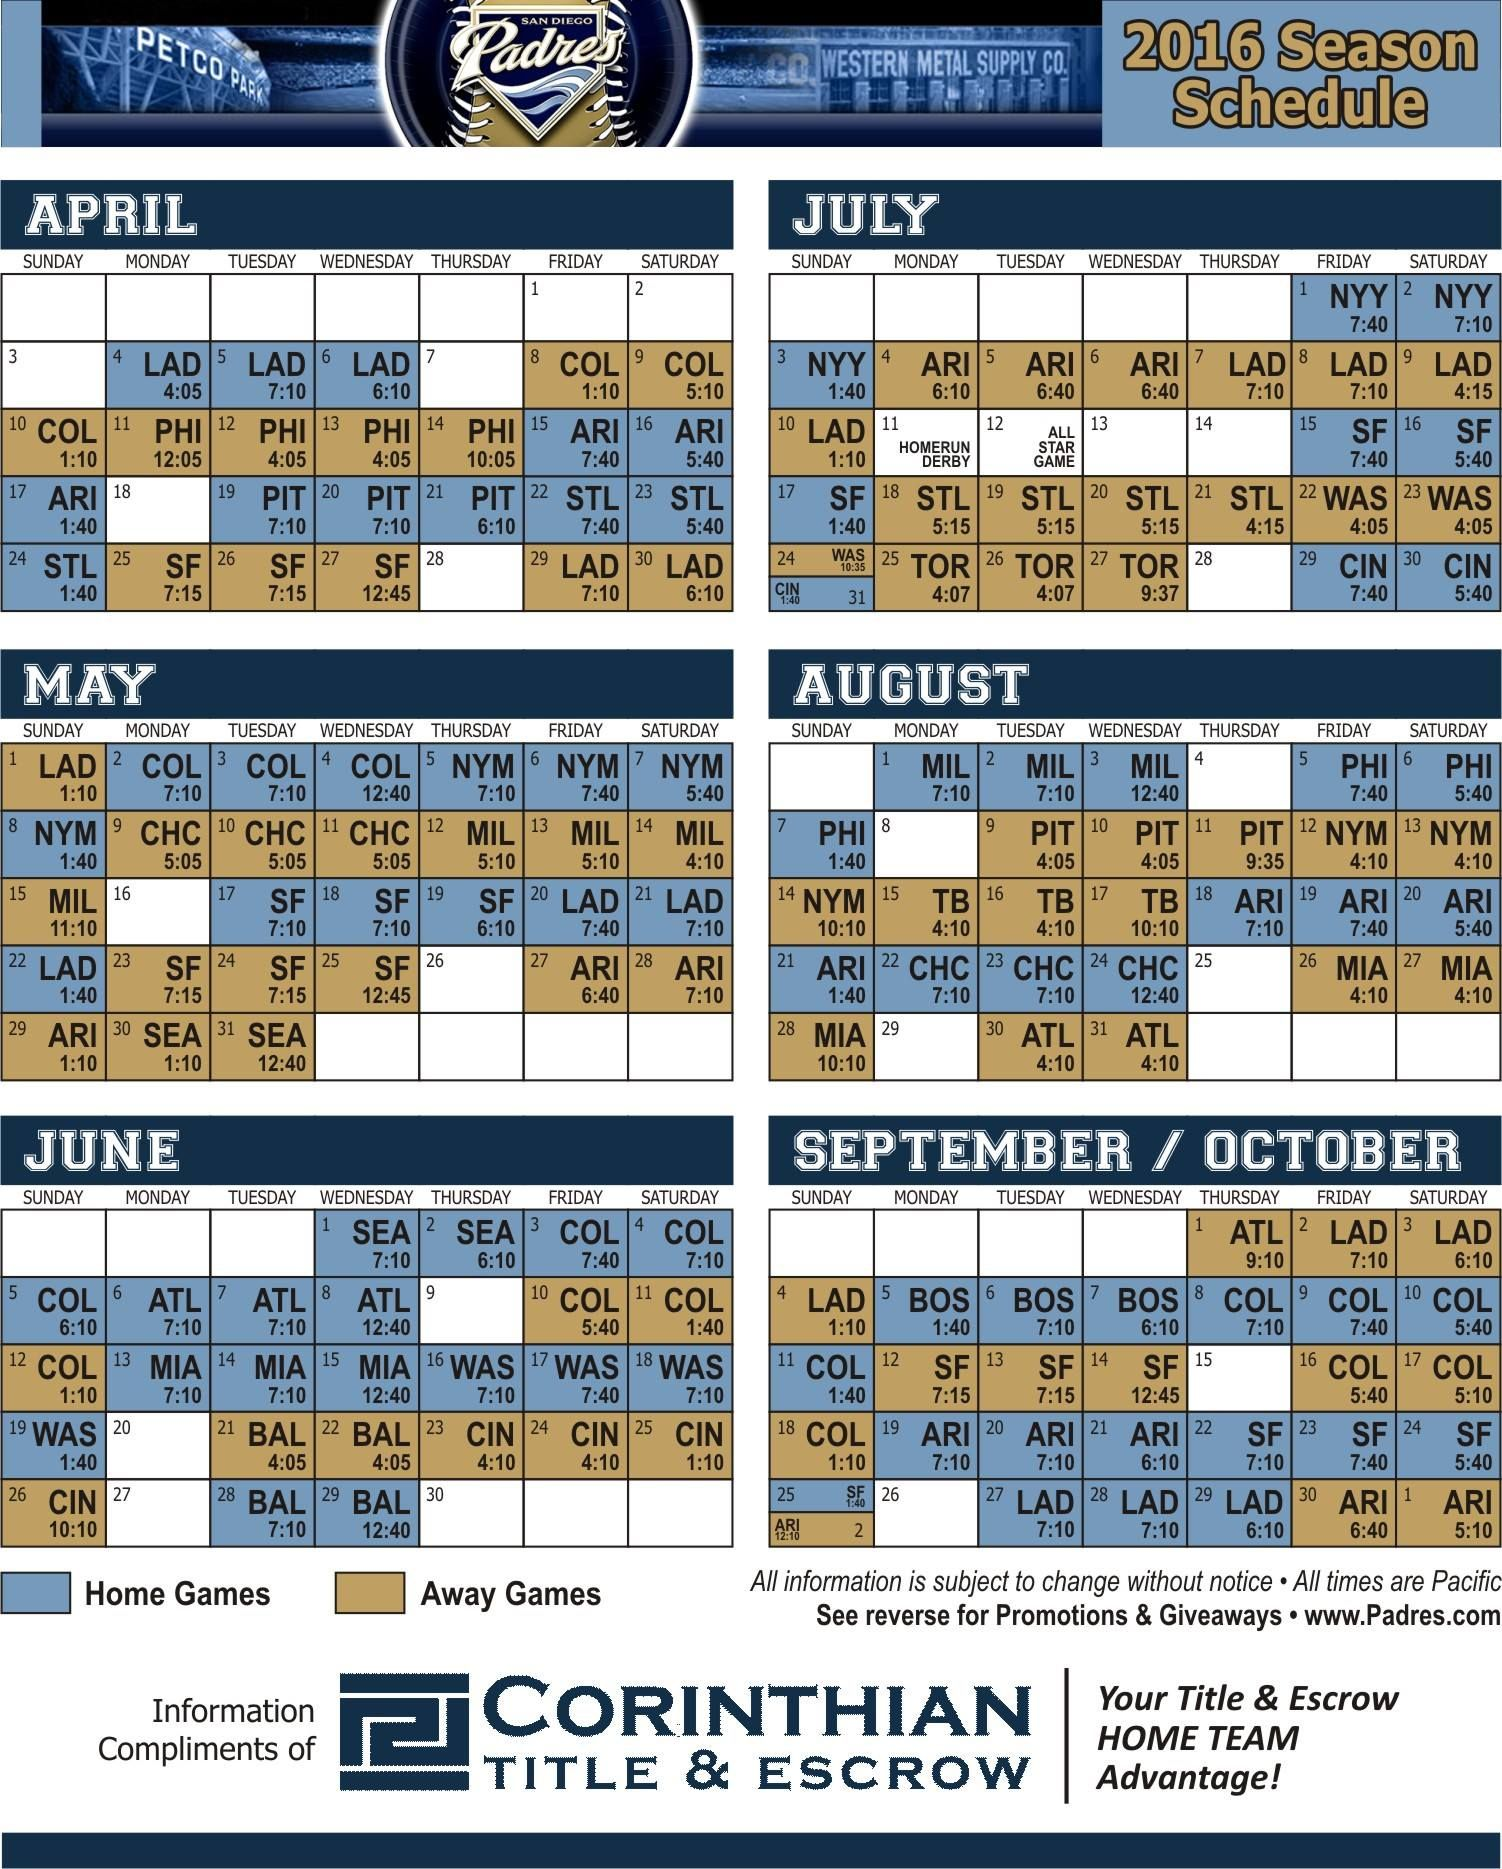 Padres Schedule 2016 Padres Friday Saturday Sunday Sunday Monday Tuesday